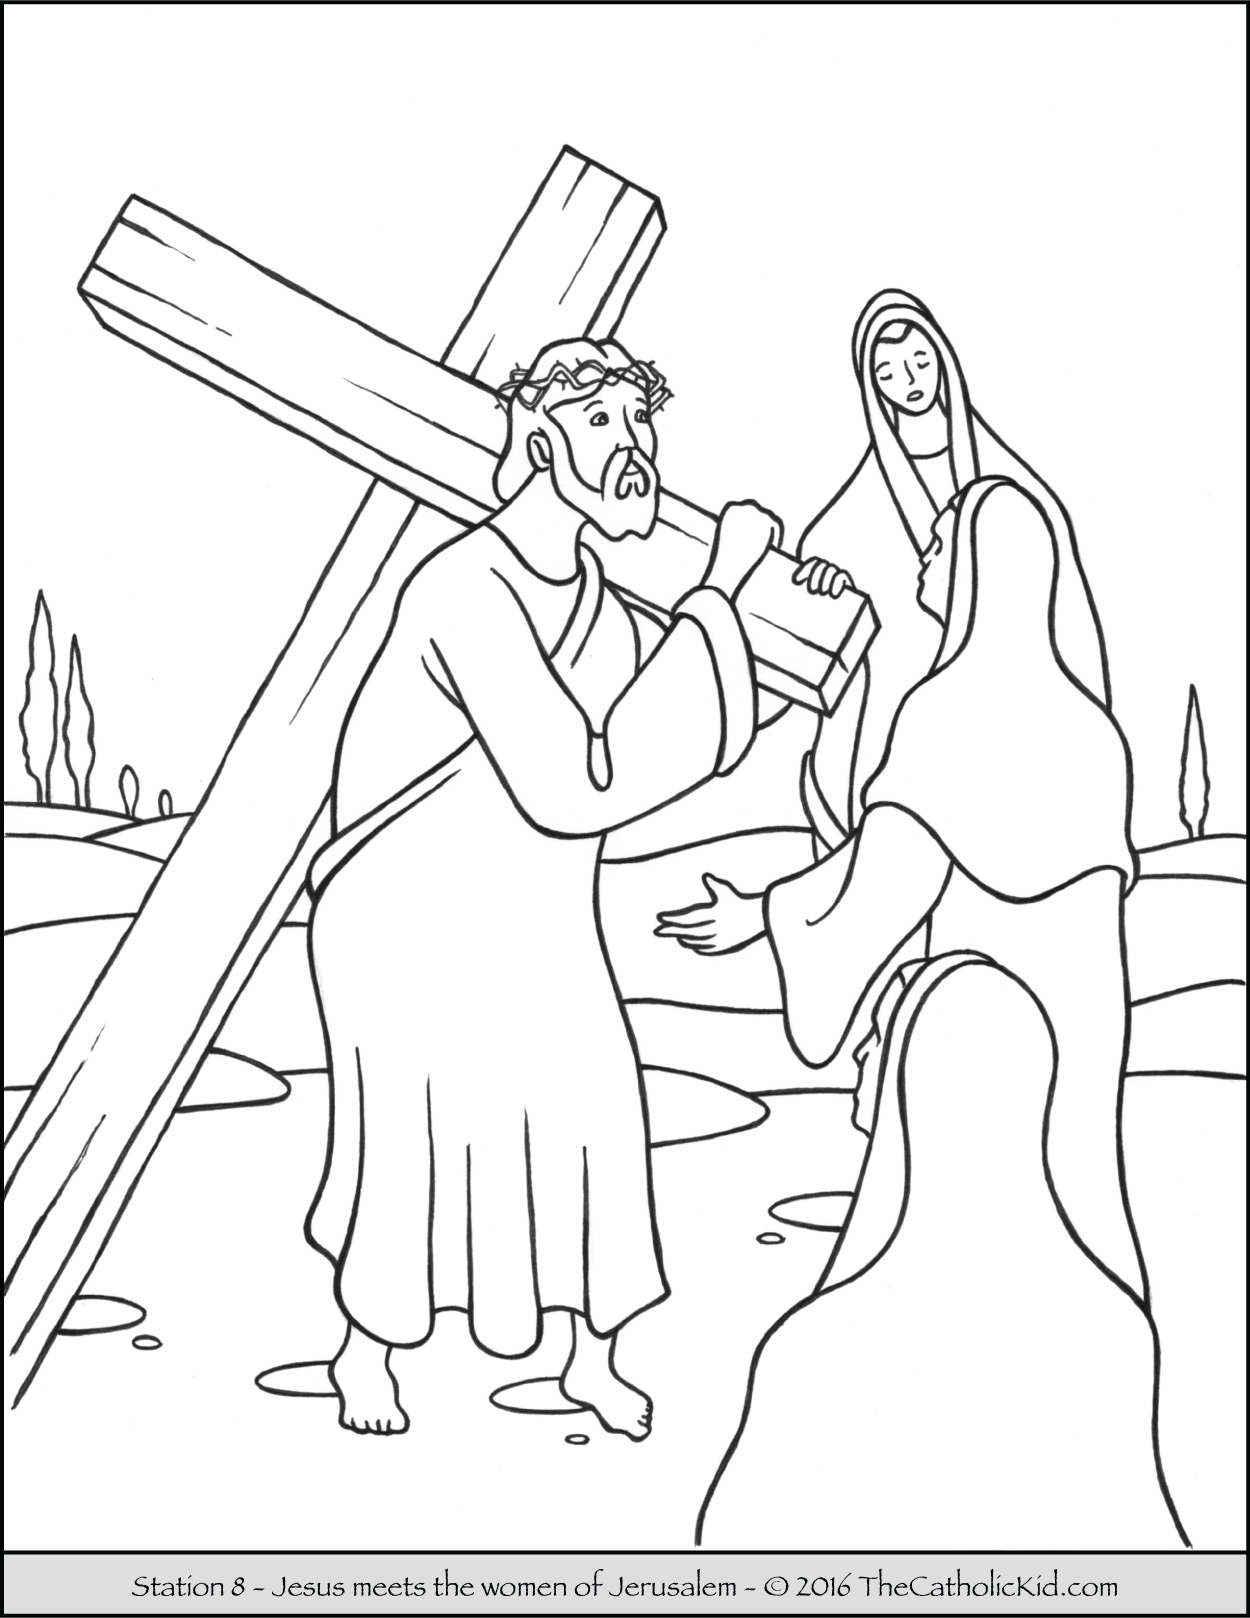 Coloring Pages Printable Image Jesus Christ 1250x1618 The Big Christian Family Lent 2018